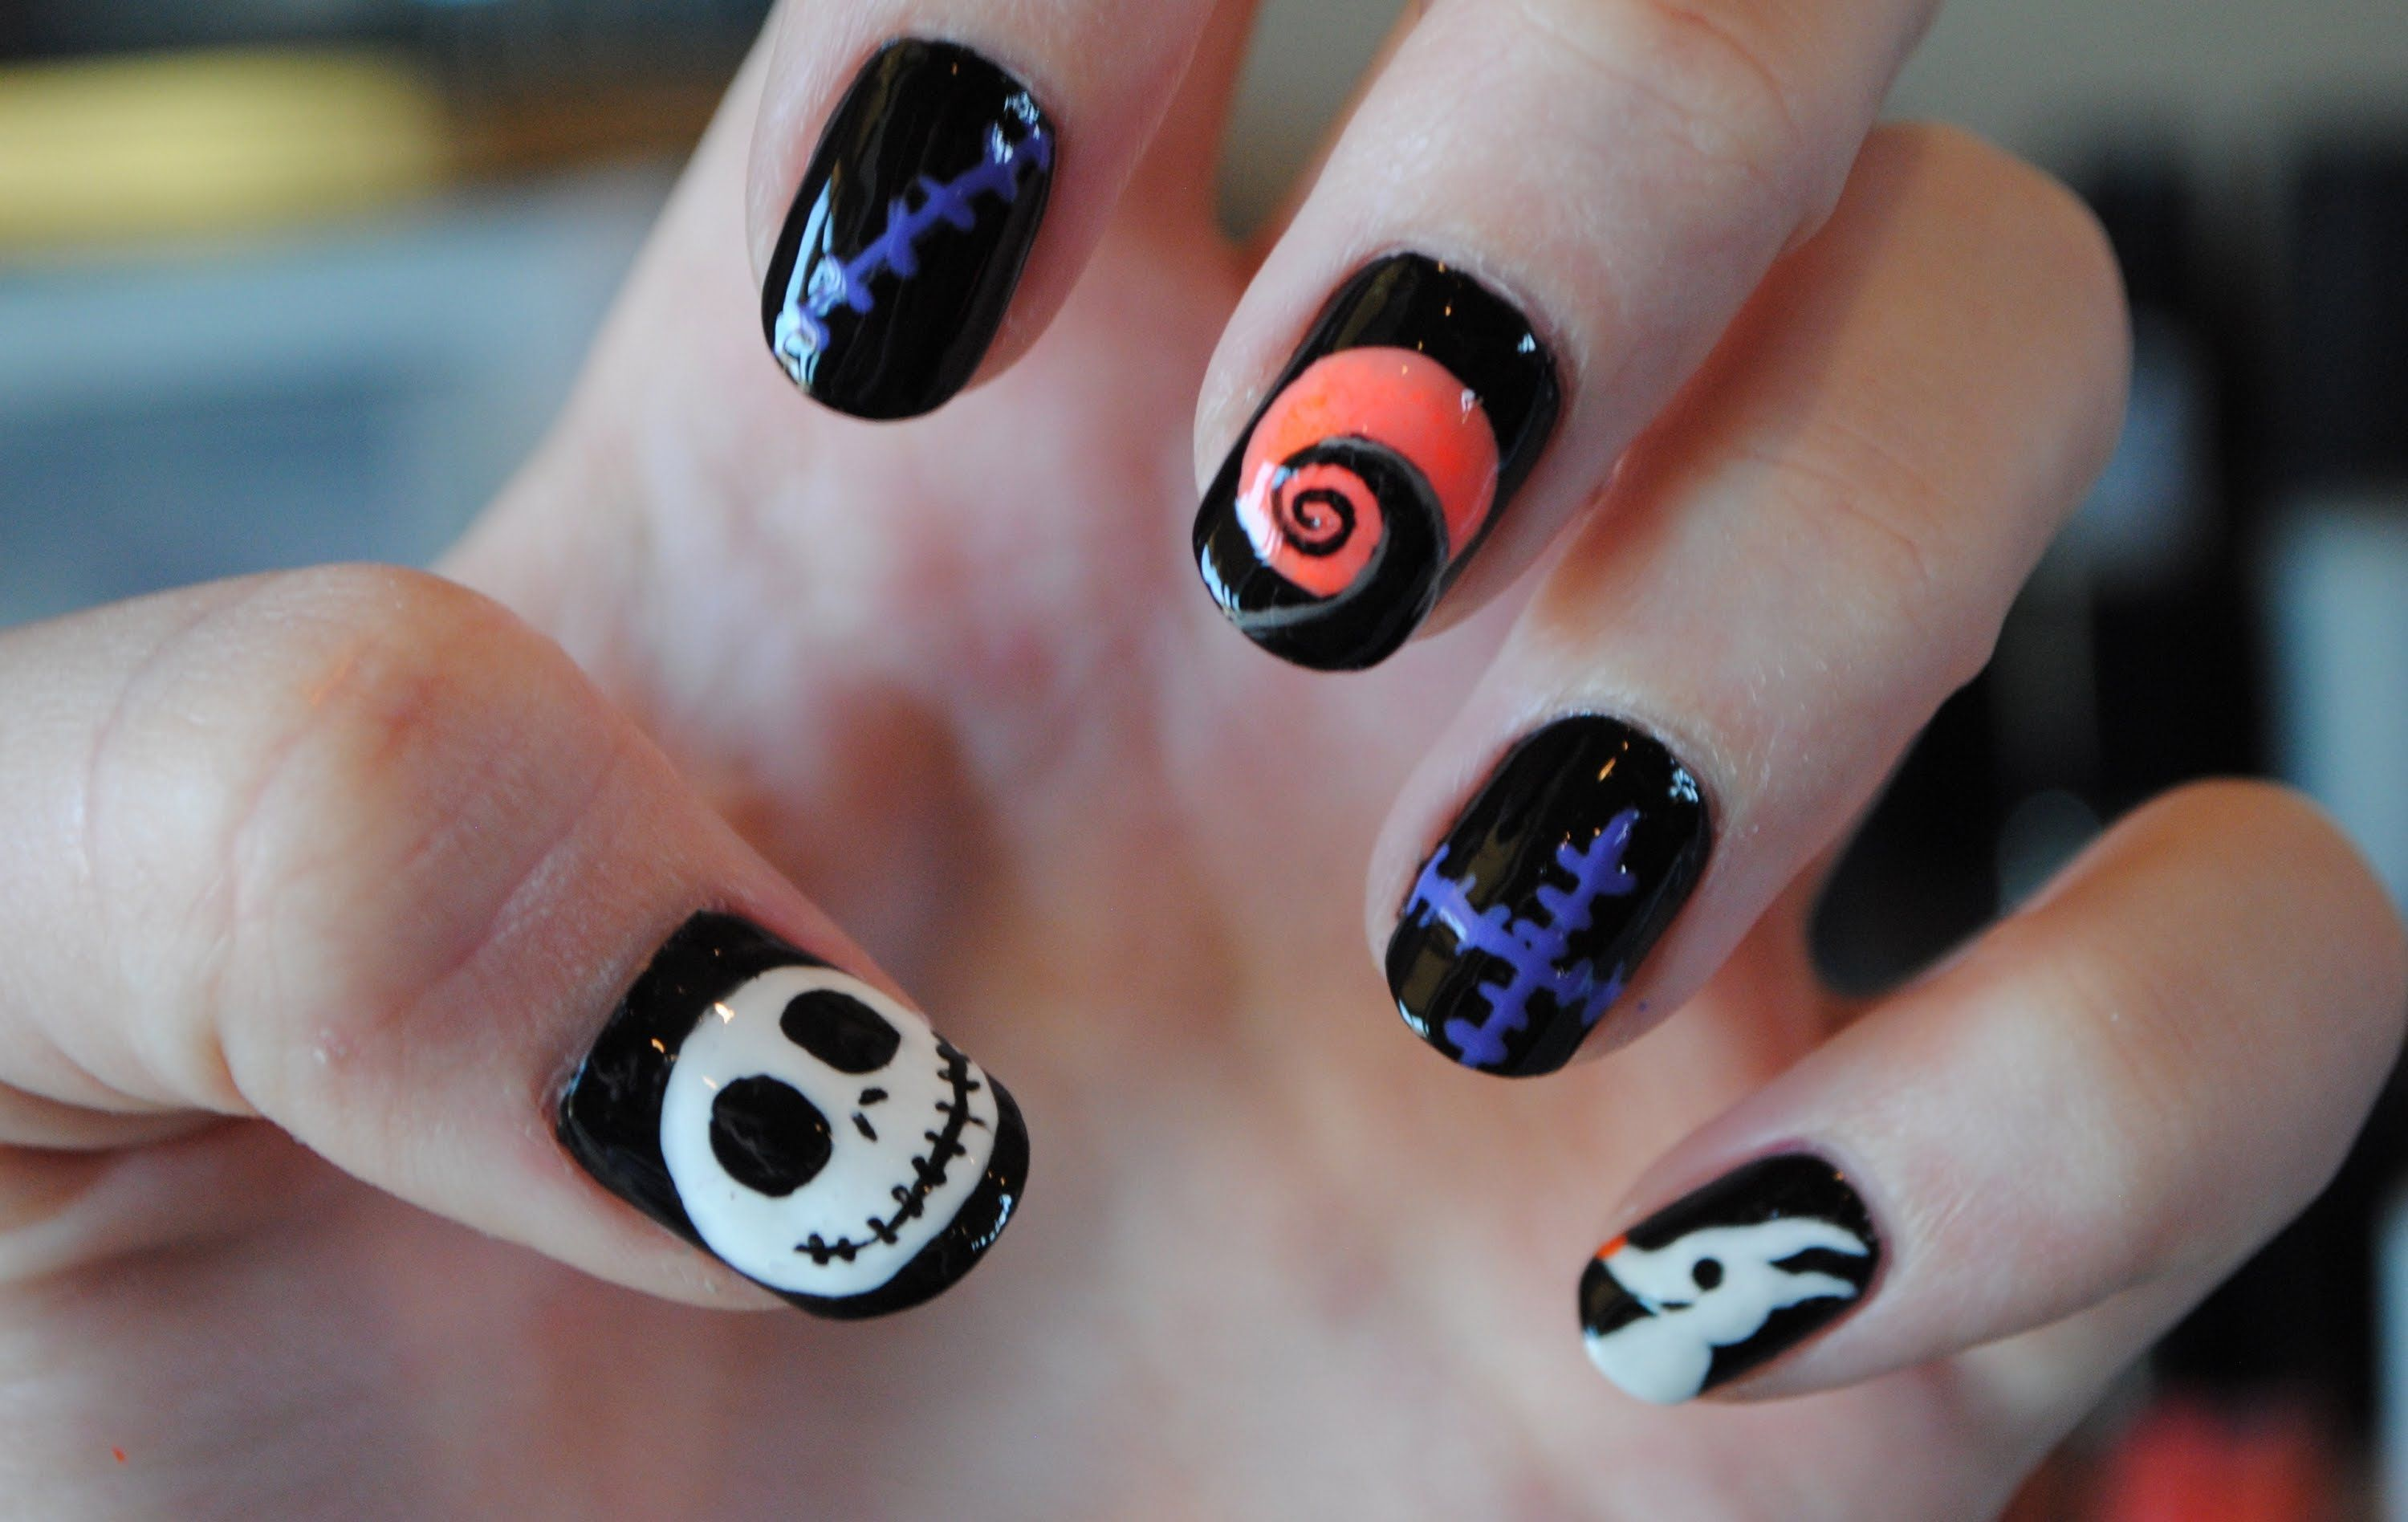 10 Spooky Halloween Nail Art Designs | Pinterest | Christmas nail ...